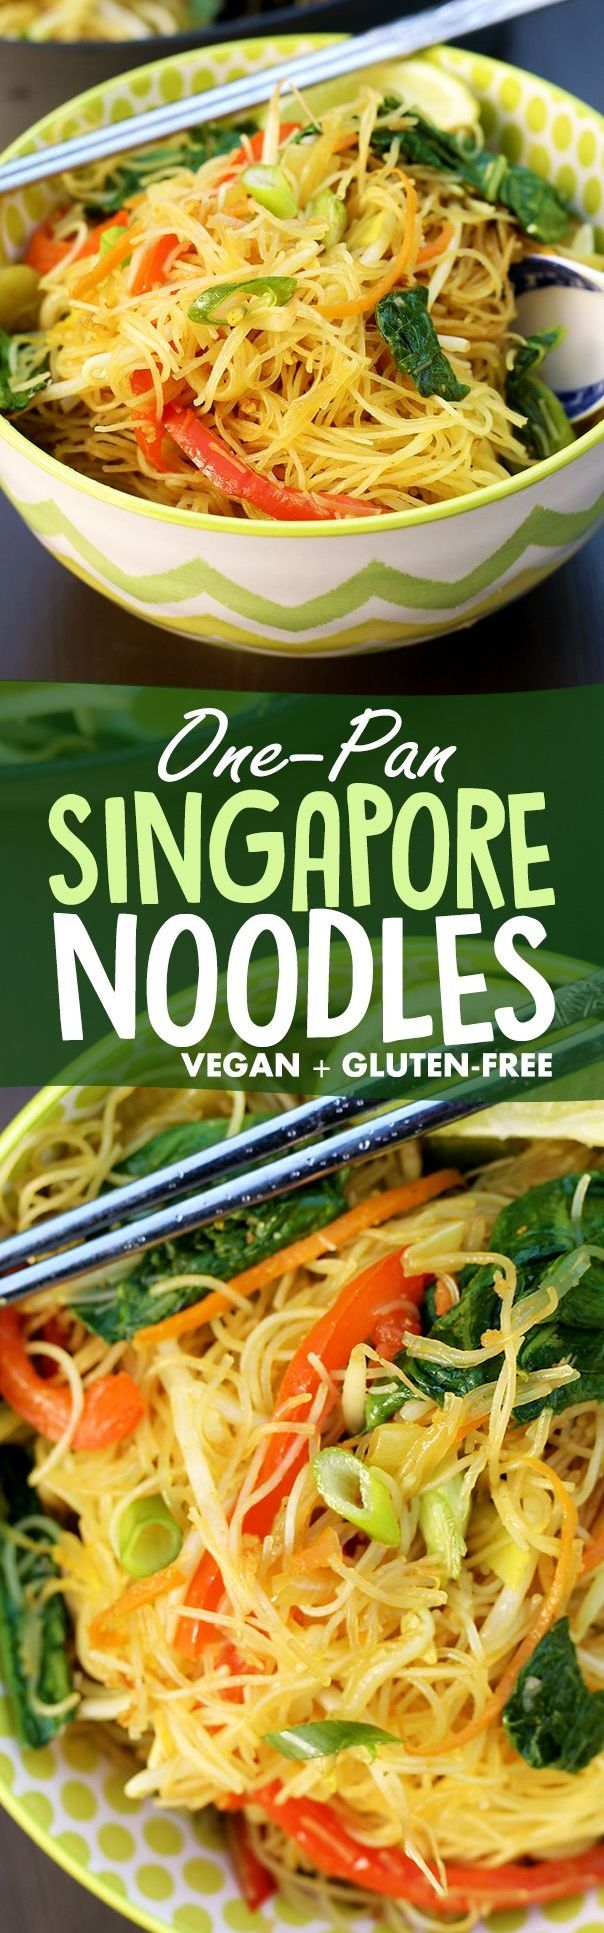 Simple One Pan Singapore Noodles recipe made from rice vermicelli, curry powder, bean sprouts, bok choy, spring onion, carrots, red pepper, snow peas, and a ton of other nutritious and easy-to-get ingredients. Vegan, gluten-free, and healthy!